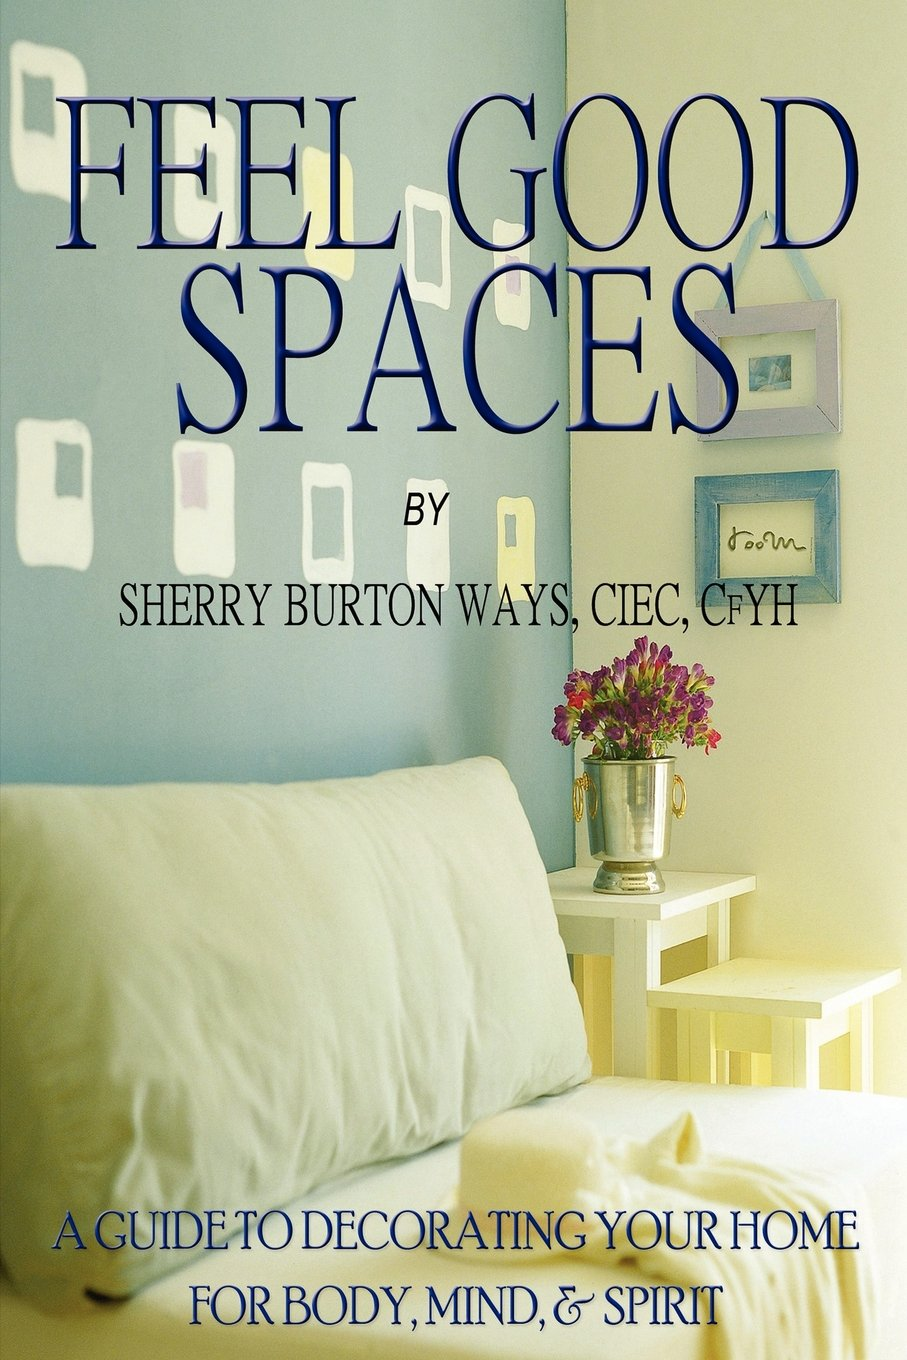 Feel-Good Spaces: A Guide to Decorating Your Home For Body, Mind, and Spirit